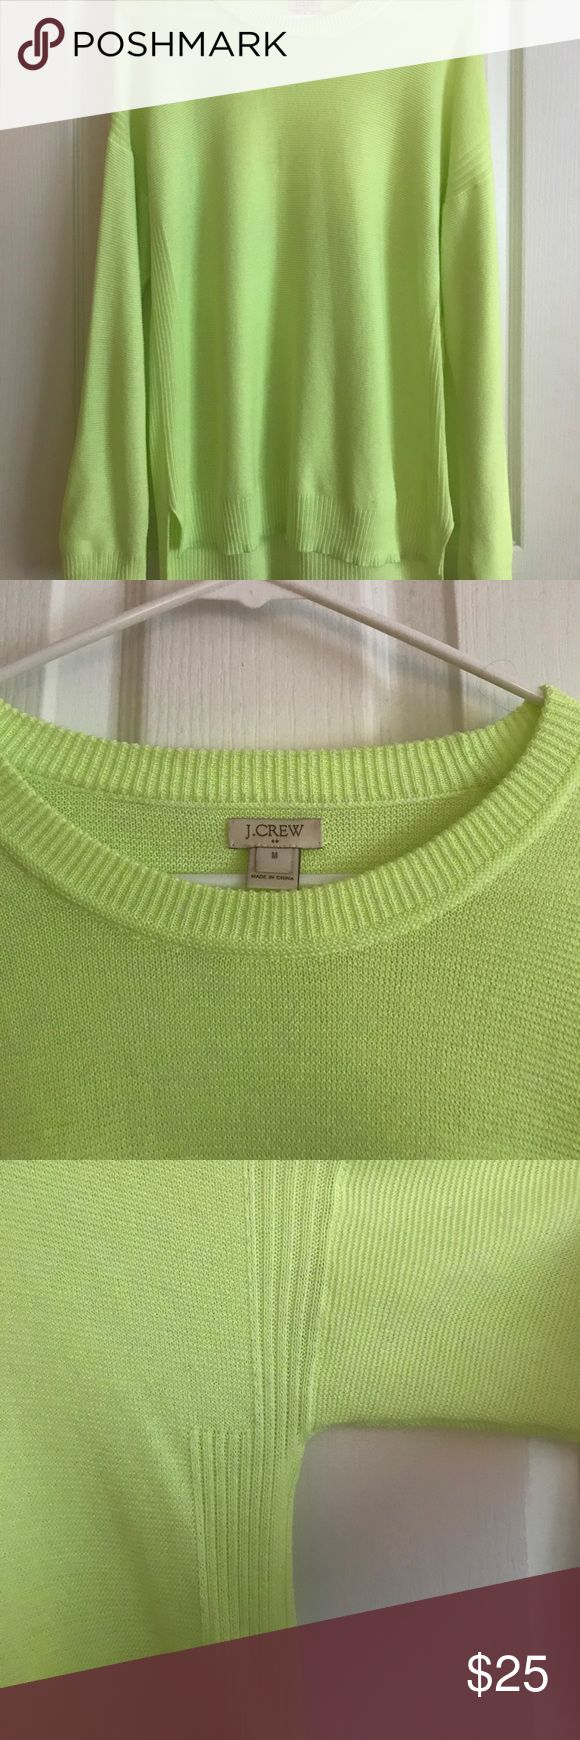 J Crew Sweater Neon yellow J Crew sweater. Size Medium. Like new- only worn a couple times. Slightly shorter in the front and longer in the back. Lightweight and great for fall. Long in the back to wear with leggings. J. Crew Sweaters Crew & Scoop Necks